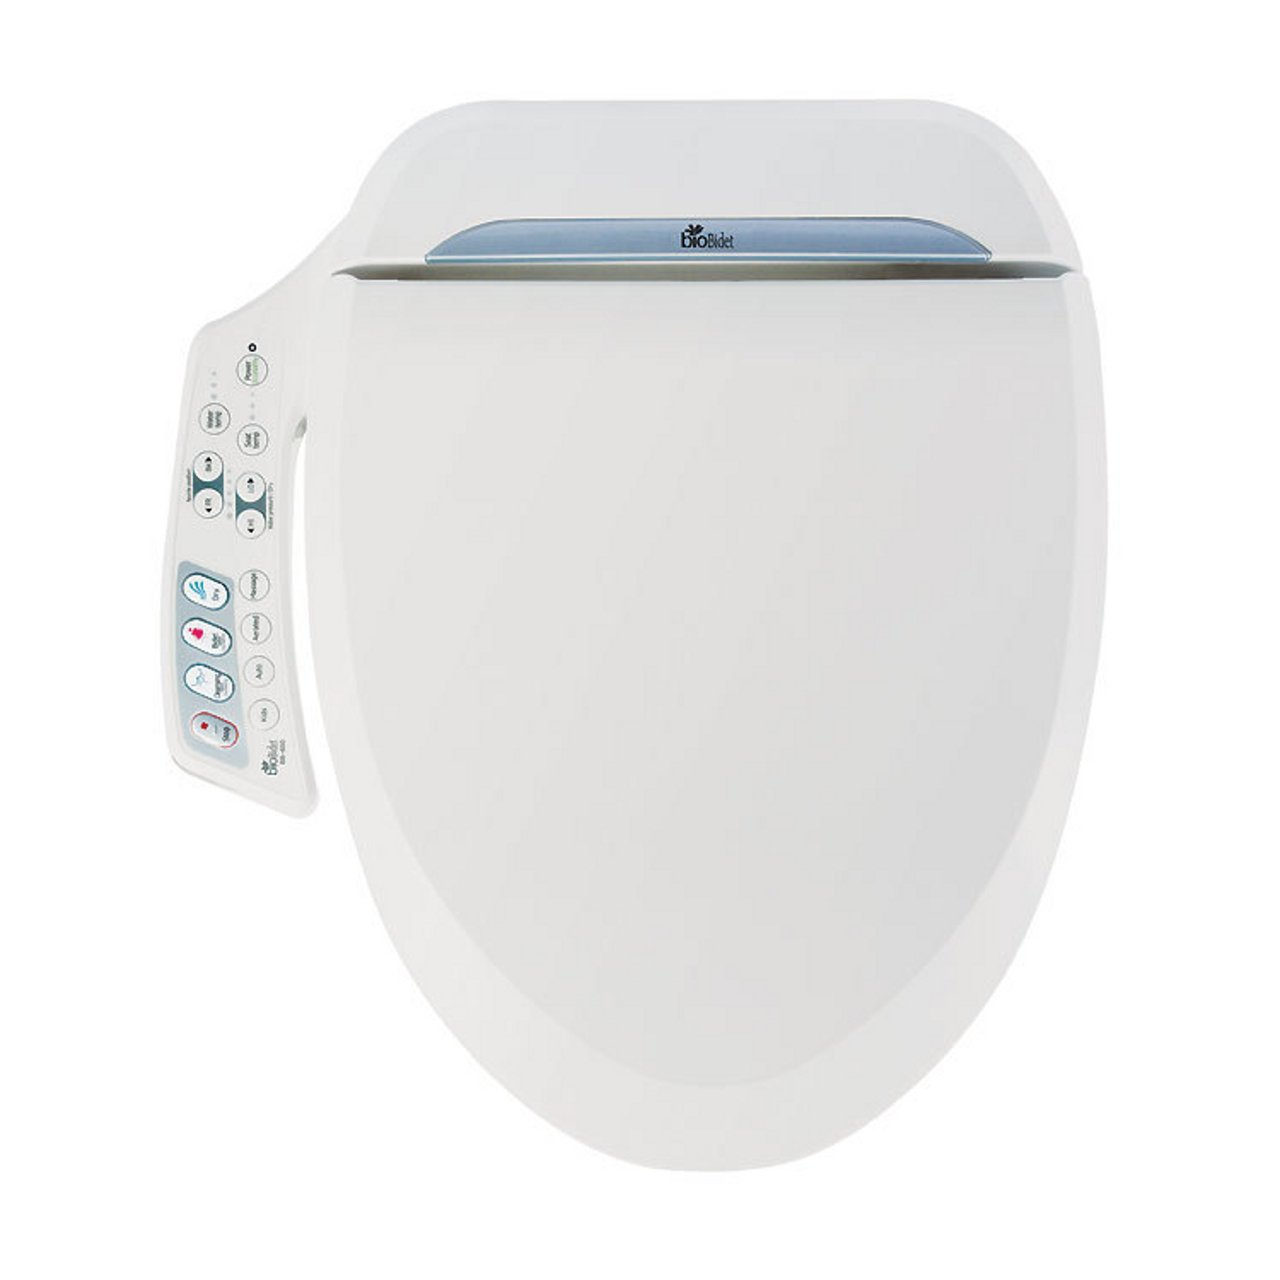 Excellent Bio Bidet Ultimate Bb 600 Advanced Bidet Toilet Seat Round White Easy Diy Installation Luxury Features From Side Panel Adjustable Heated Seat And Squirreltailoven Fun Painted Chair Ideas Images Squirreltailovenorg